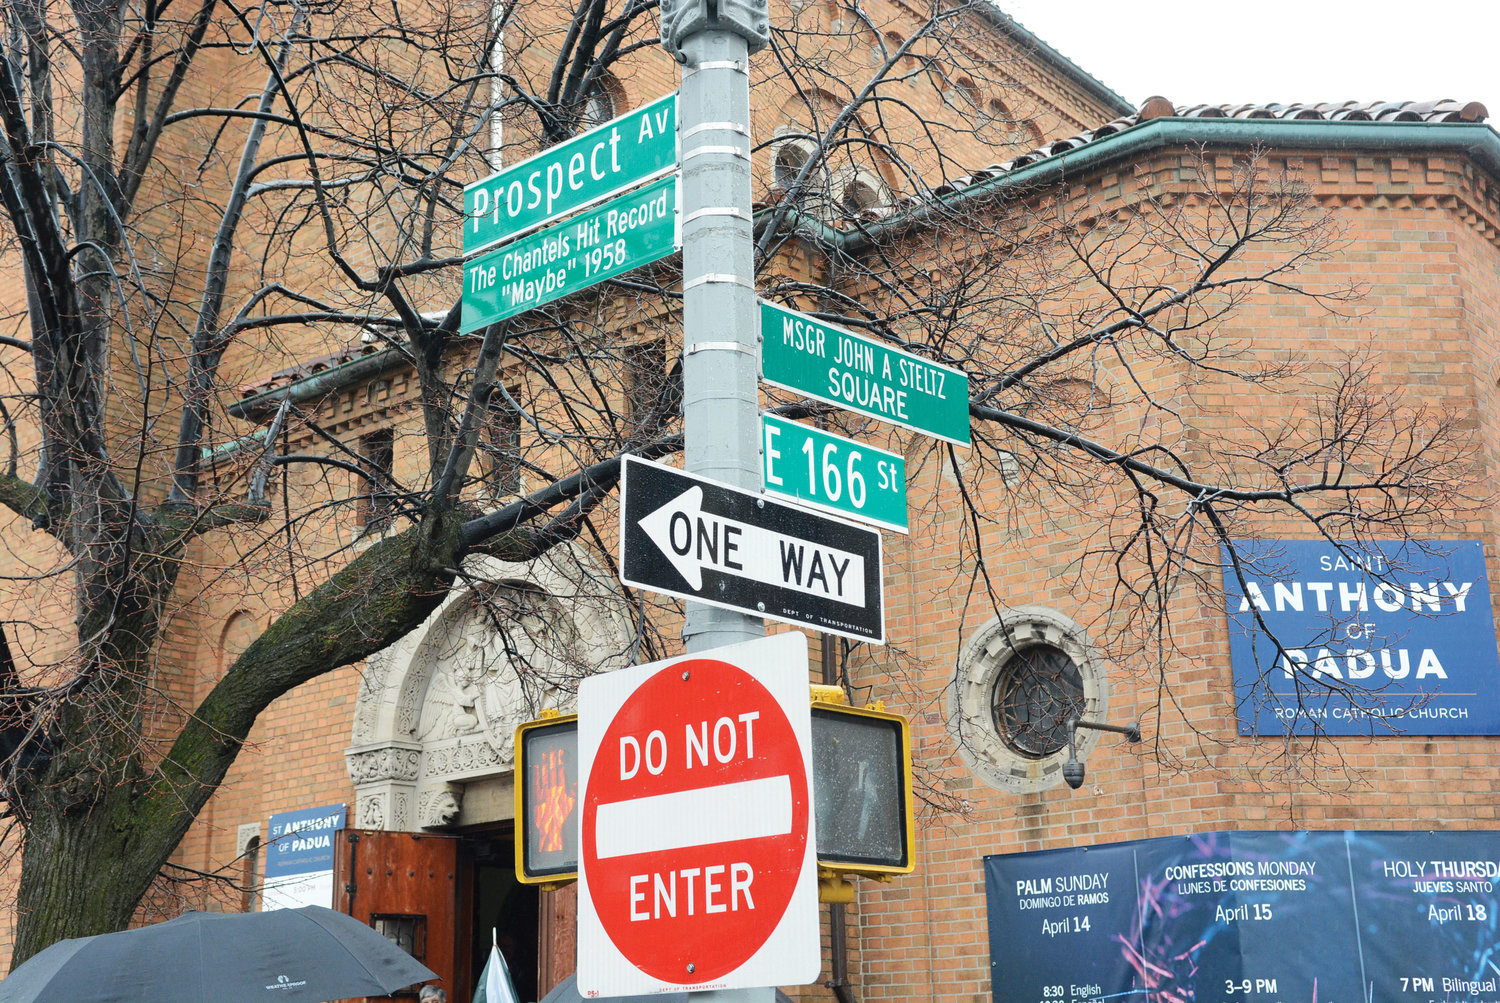 The corner of Prospect Avenue and East 166th Street in the Bronx was ceremonially renamed for The Chantels' musical group April 5.